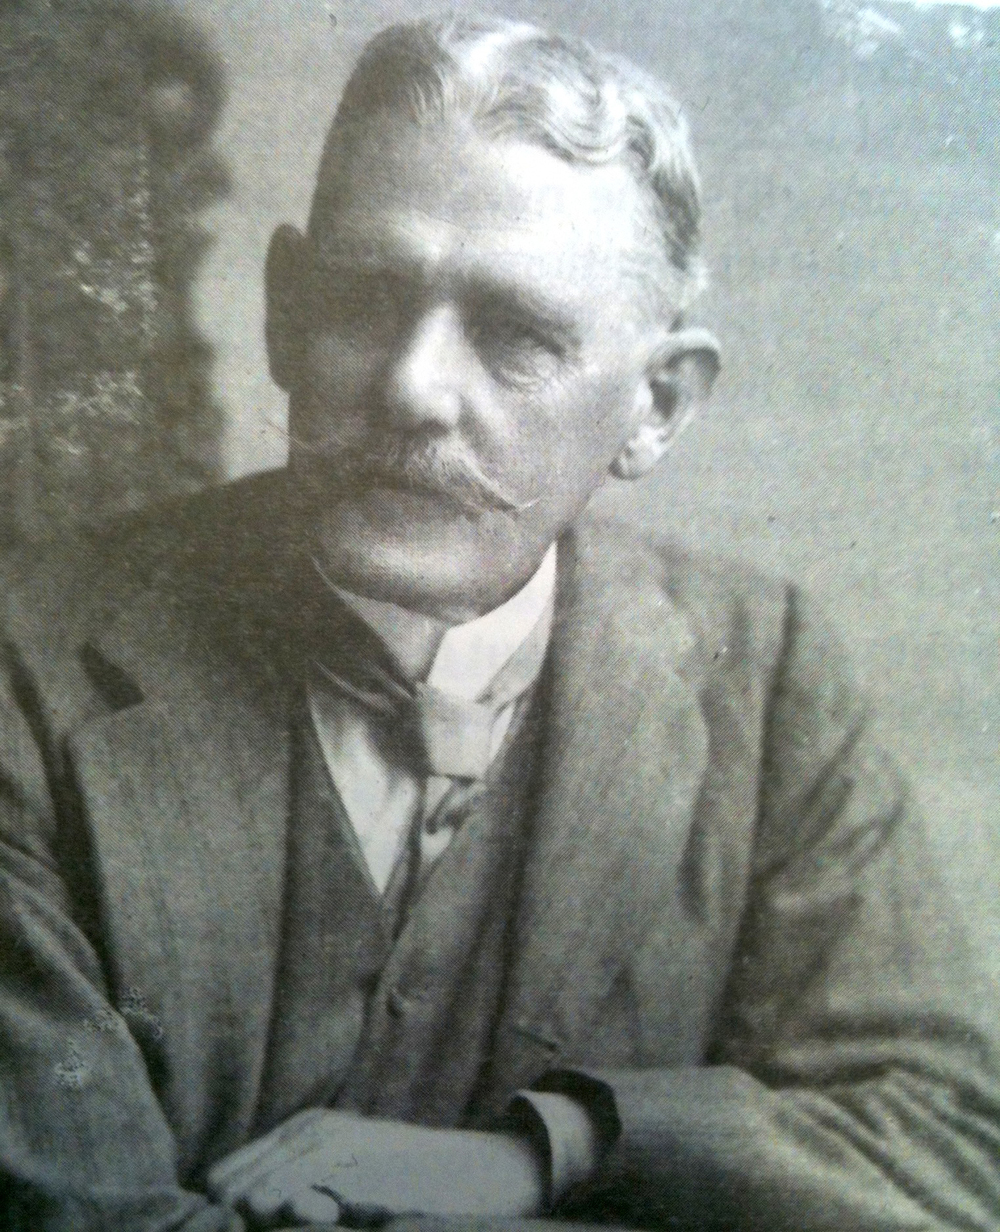 Wordsworth Donisthorpe (1847 – 1914) was an English individualist anarchist and inventor, pioneer of cinematography and chess enthusiast.  In 1895 he published Law in a Free State.